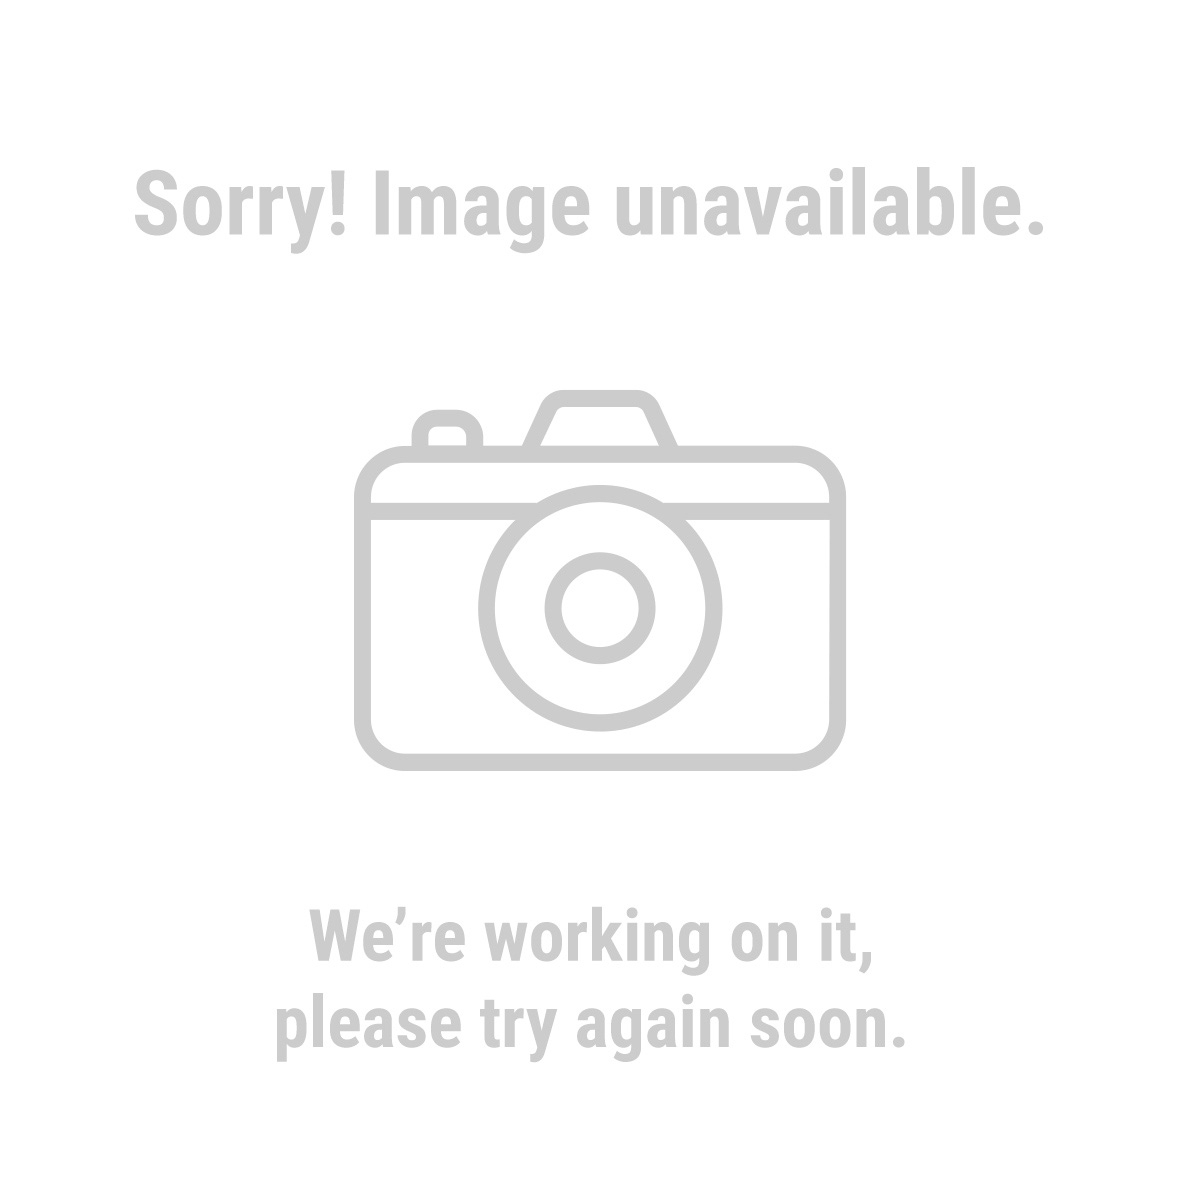 Central Pneumatic® 68740 Portable Air Compressor, 2 Horsepower, 8 Gallon, 125 PSI